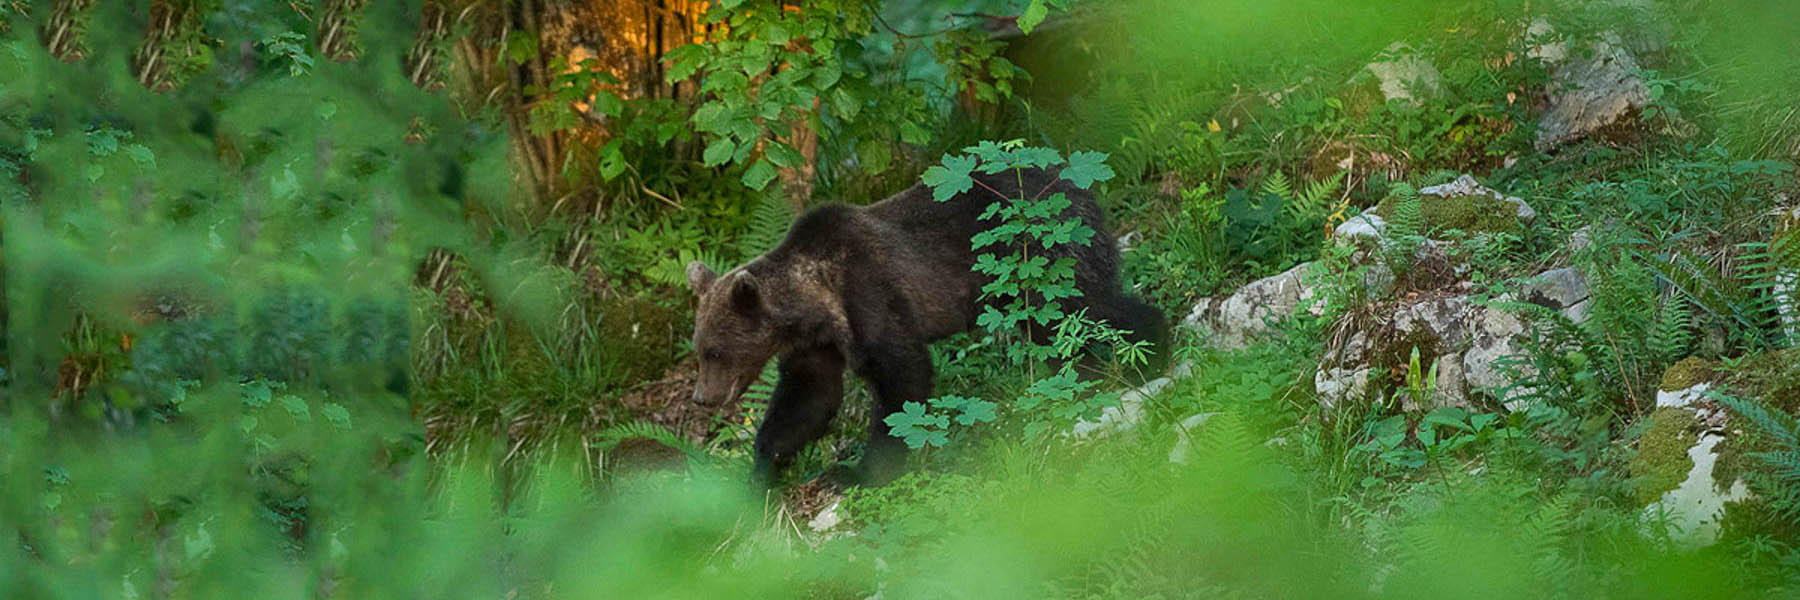 Spotting Brown bears of Slovenia